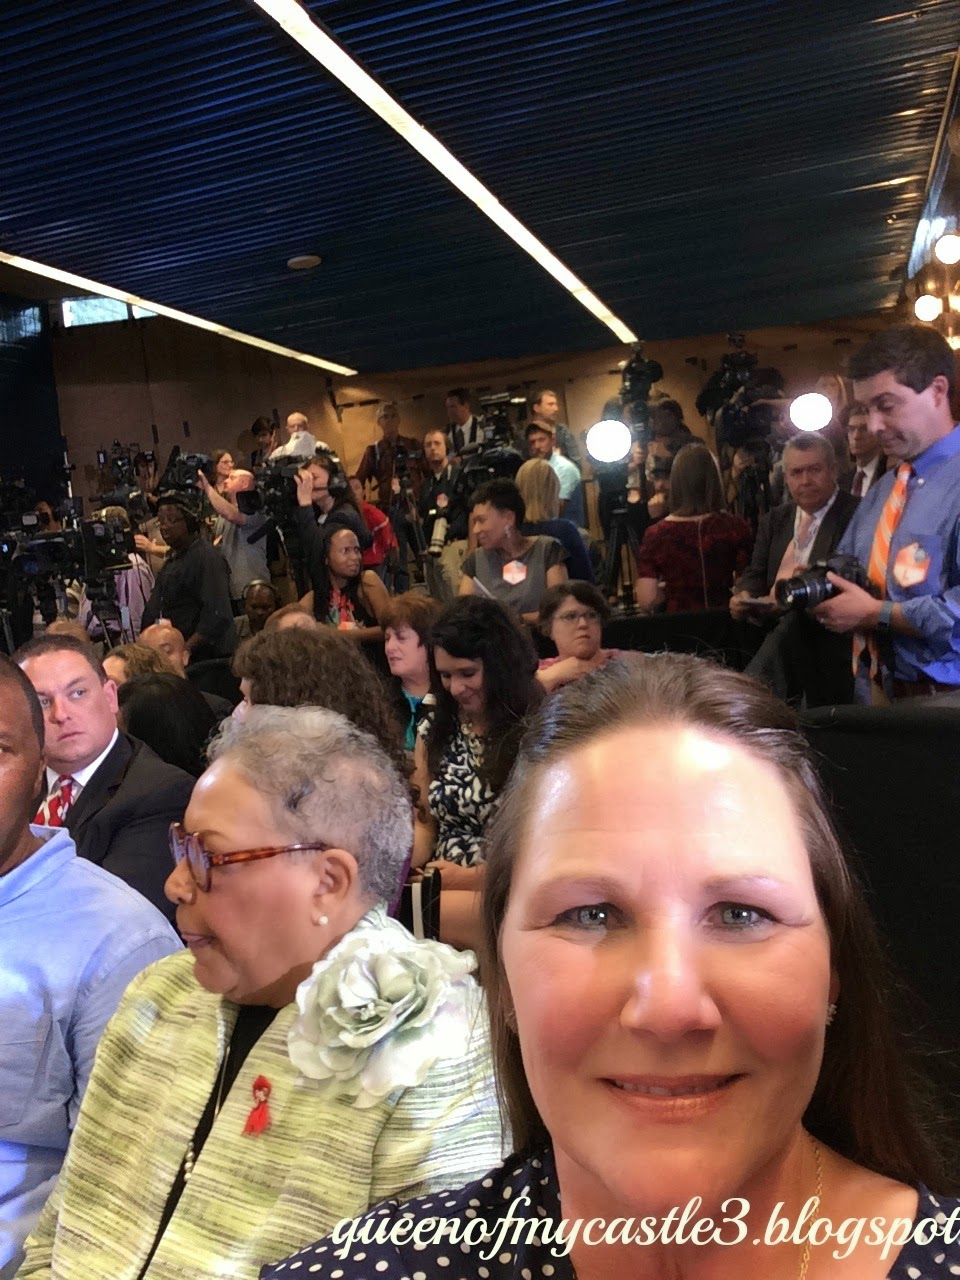 News Media waiting for Presidents arrival